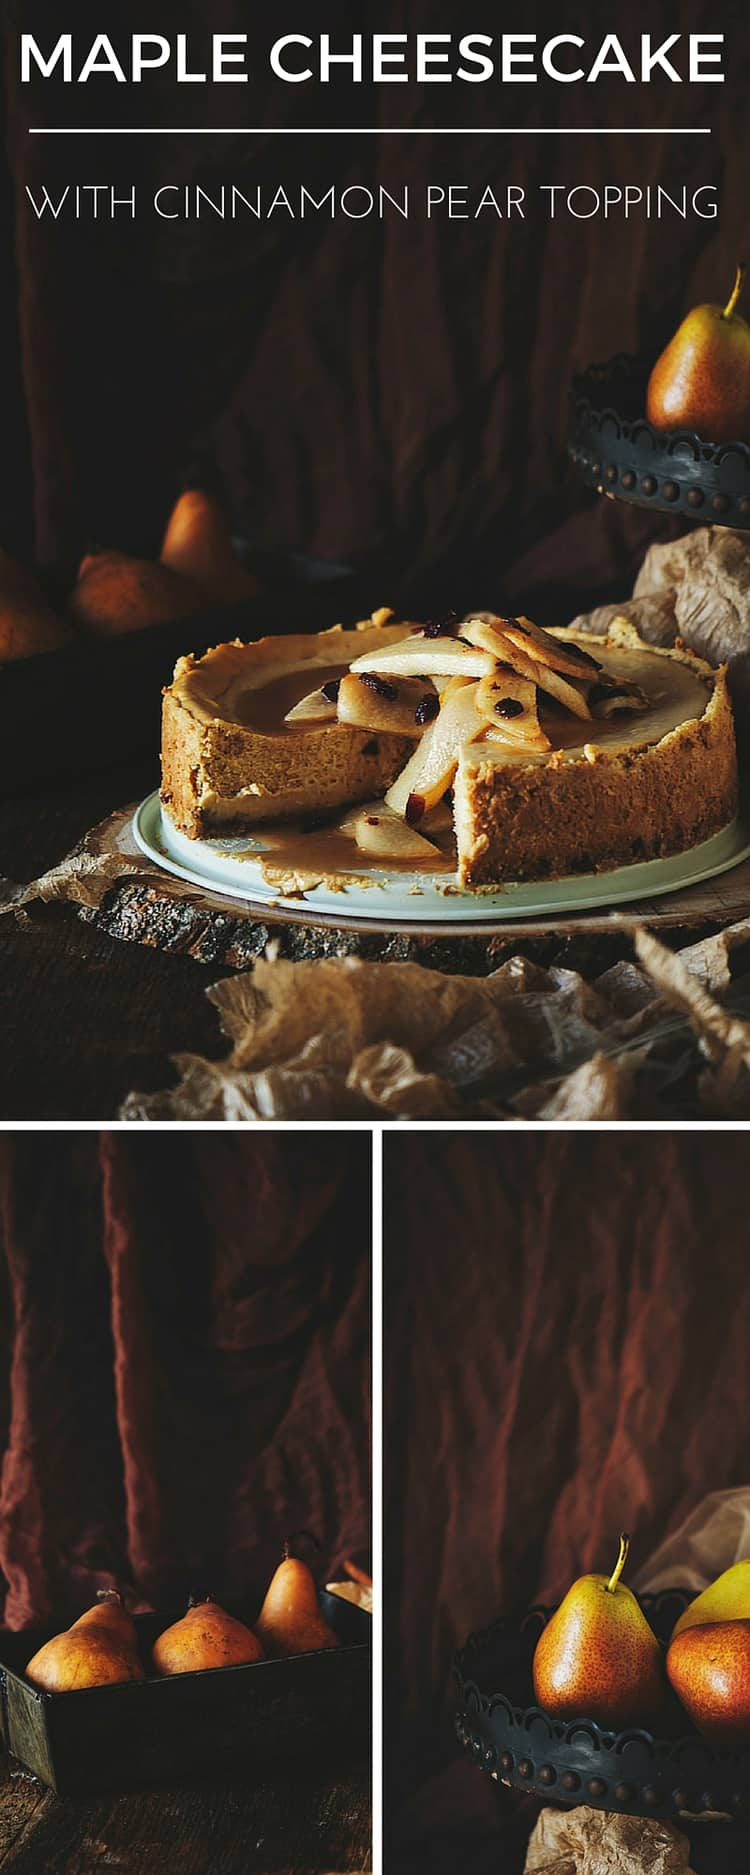 Maple Cheesecake with Cinnamon Pear Topping Recipe